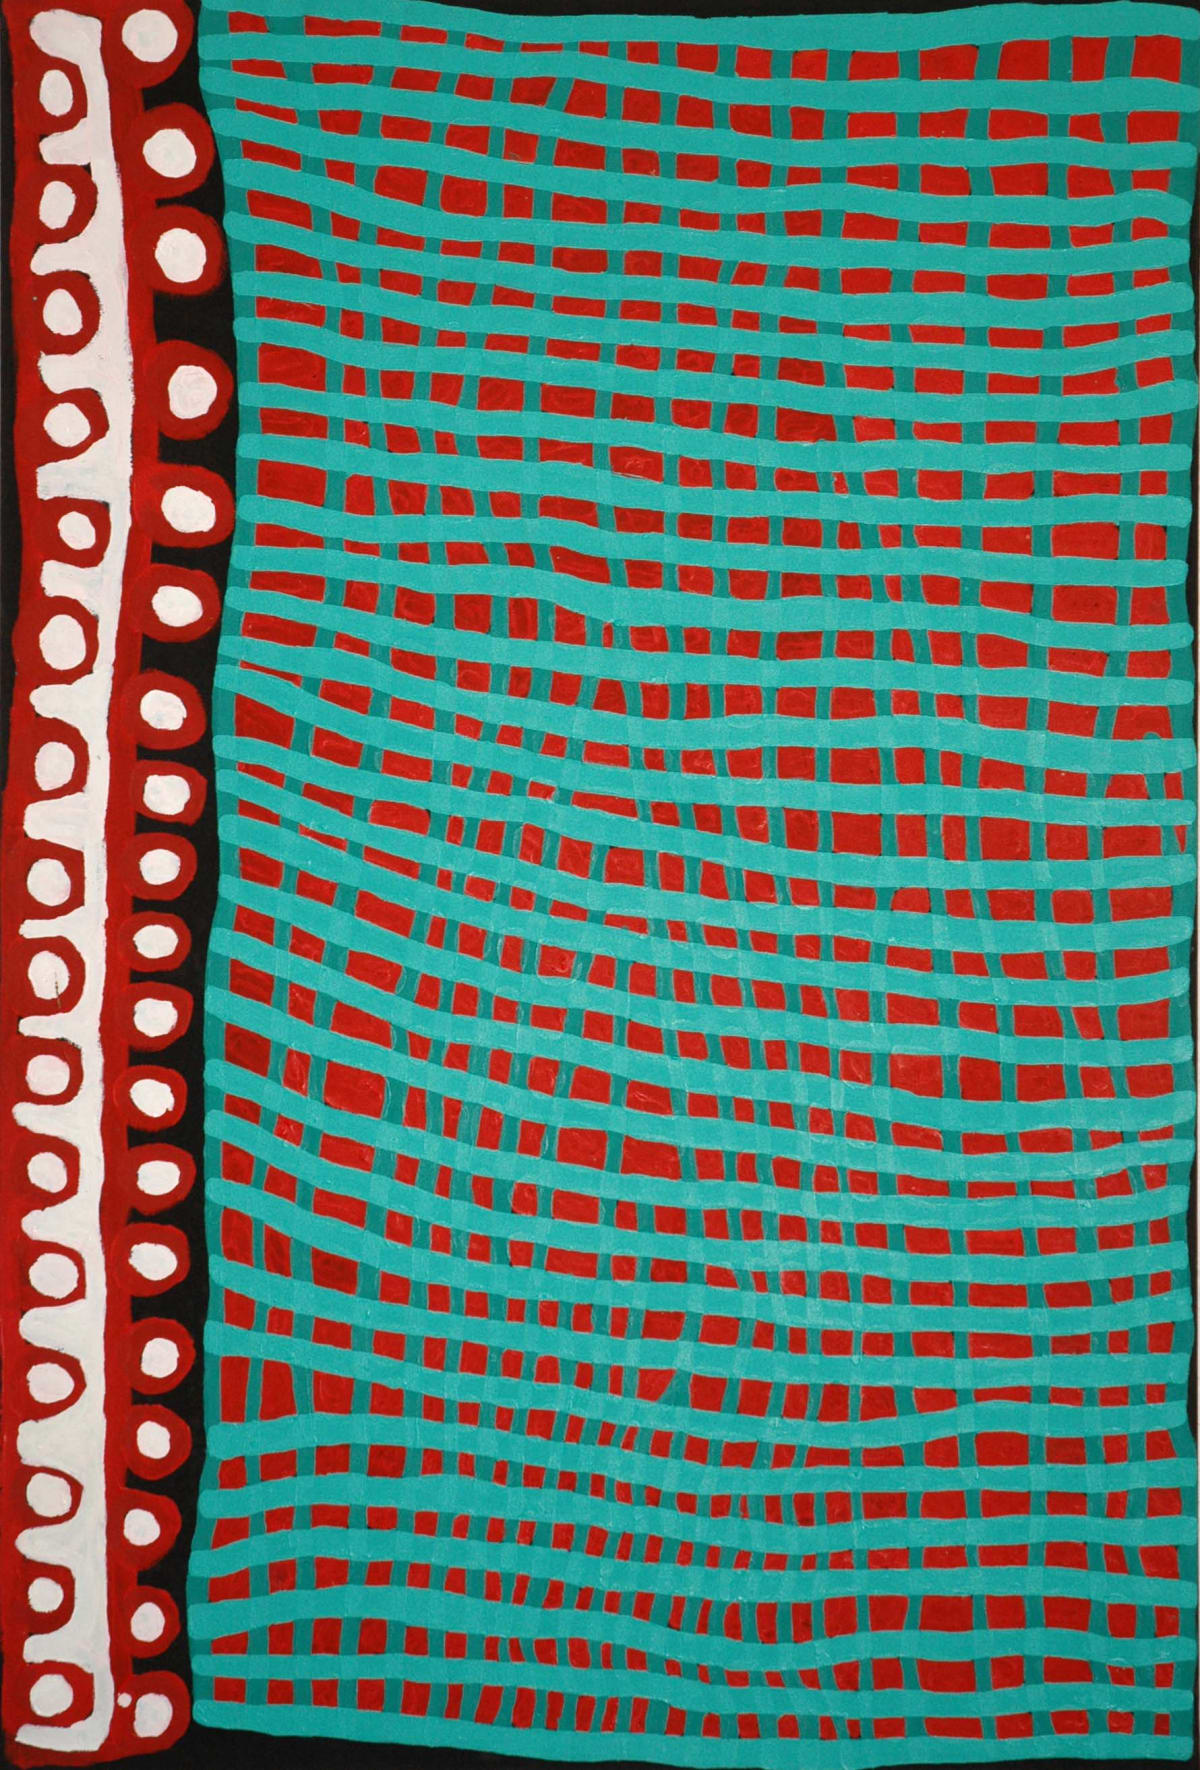 Donald Moko Kardal acrylic on canvas 168 x 112 cm